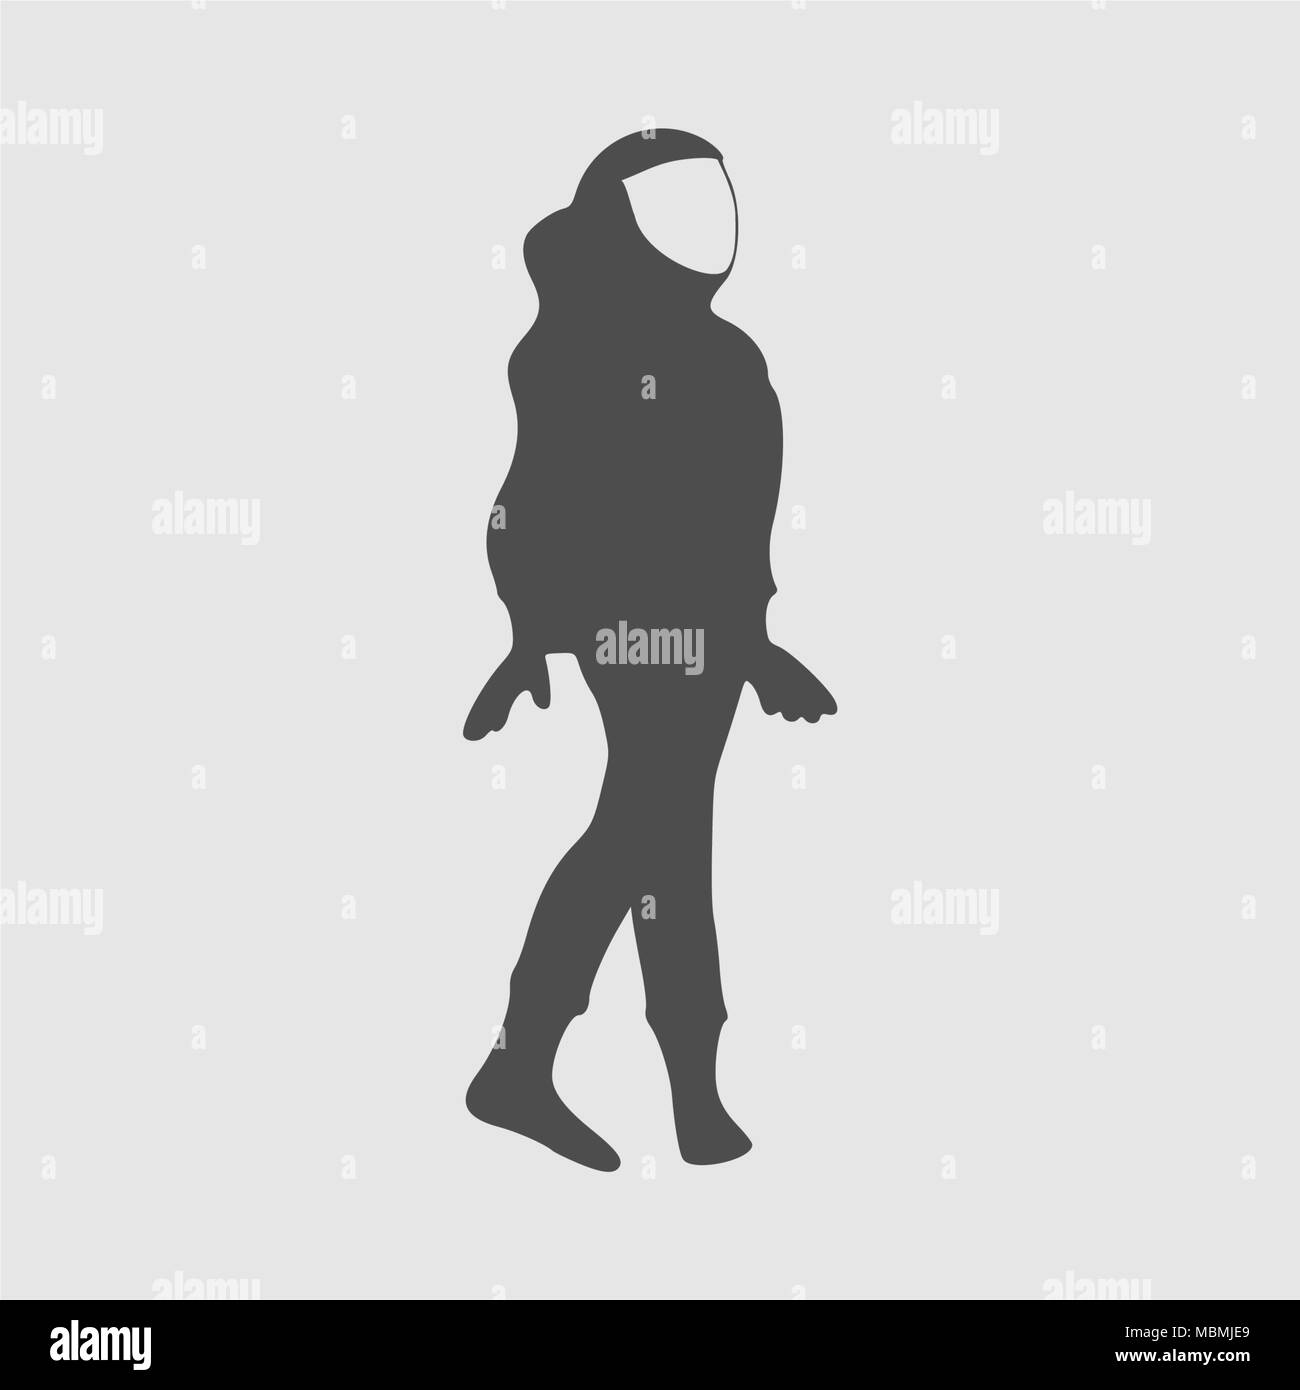 Astronaut abstract silhouette - Stock Image